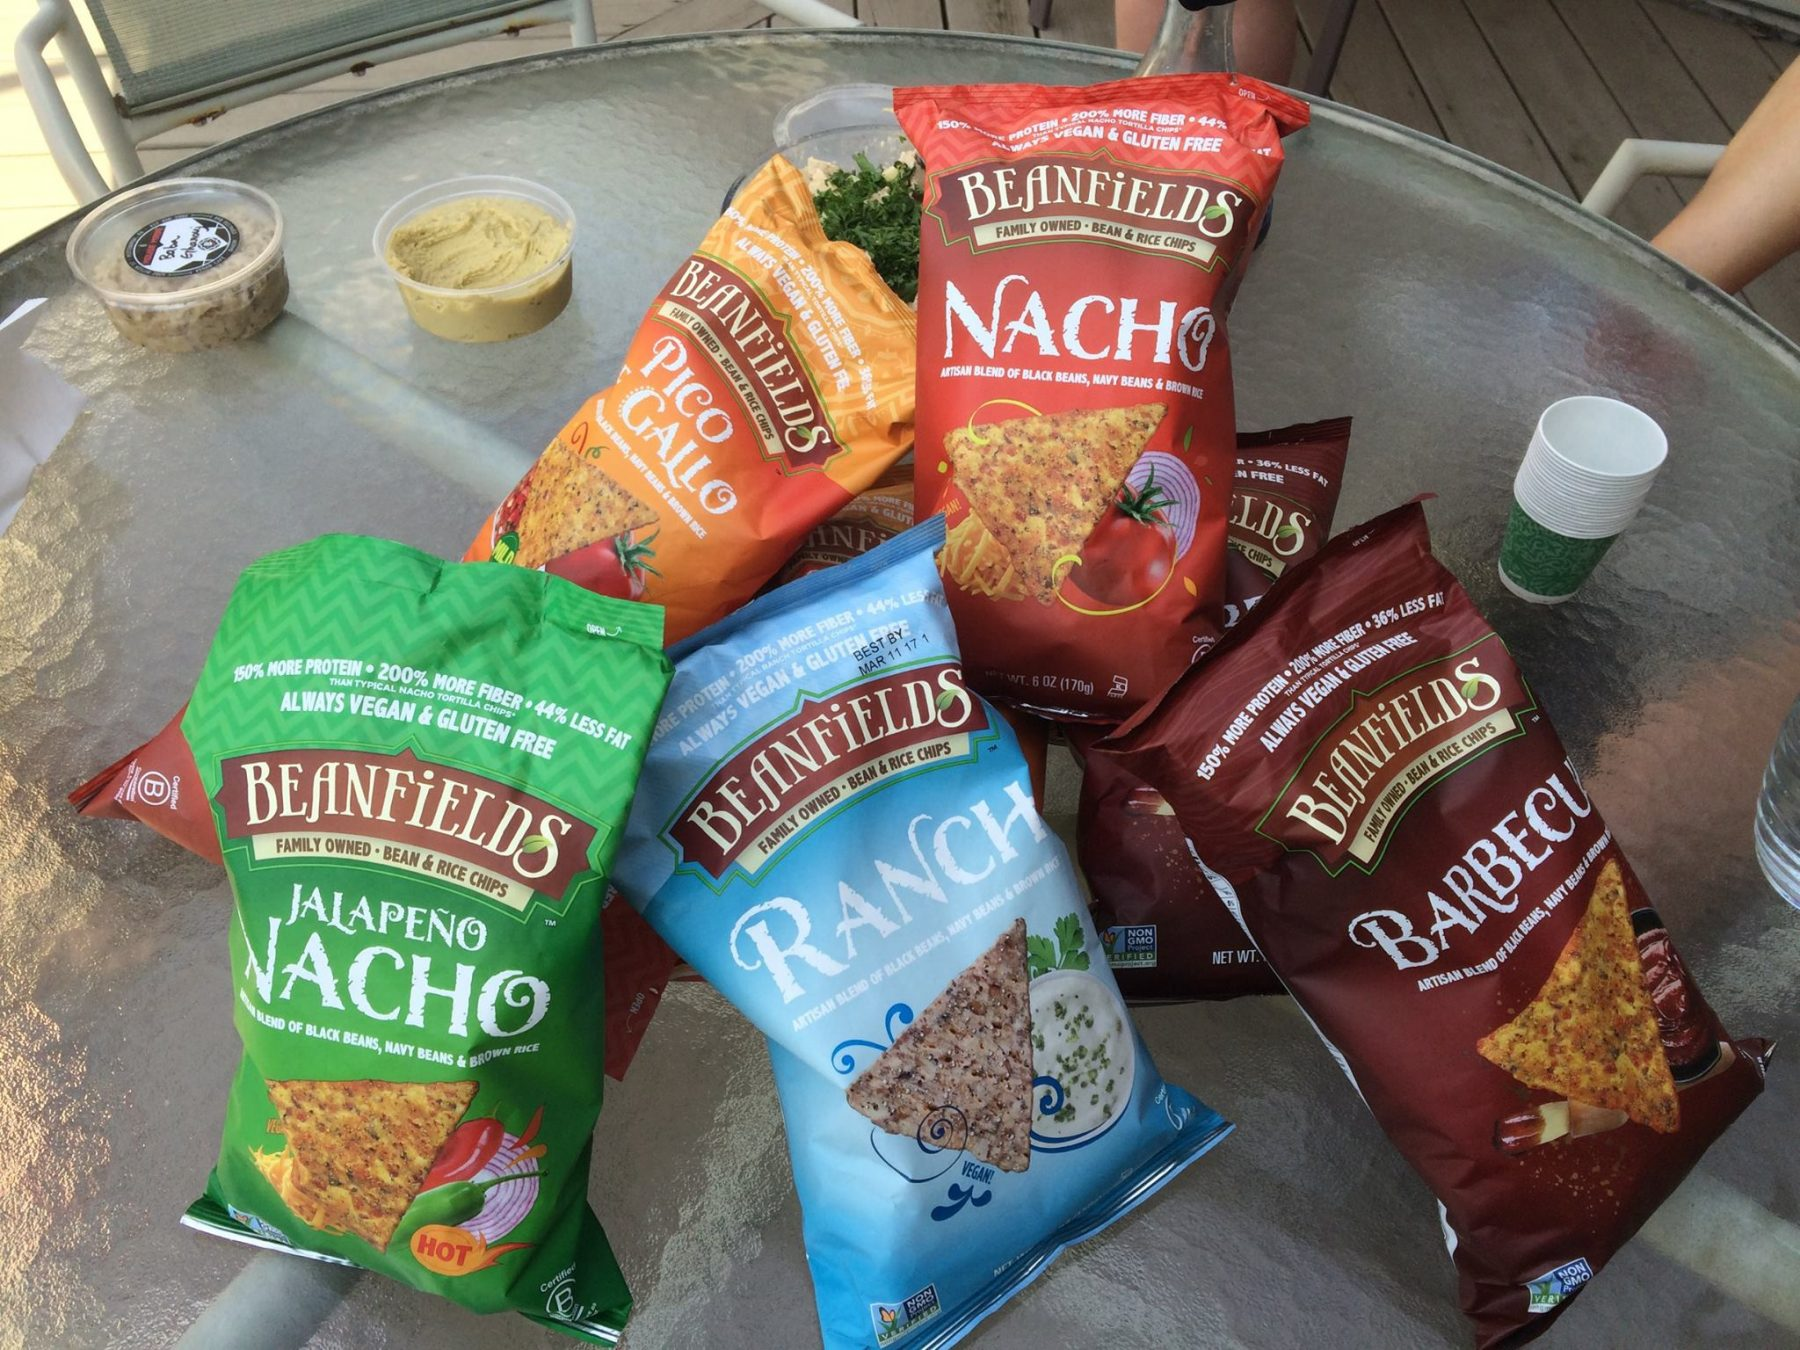 Beanfield's Vegan Chips Made from Rice and Beans!